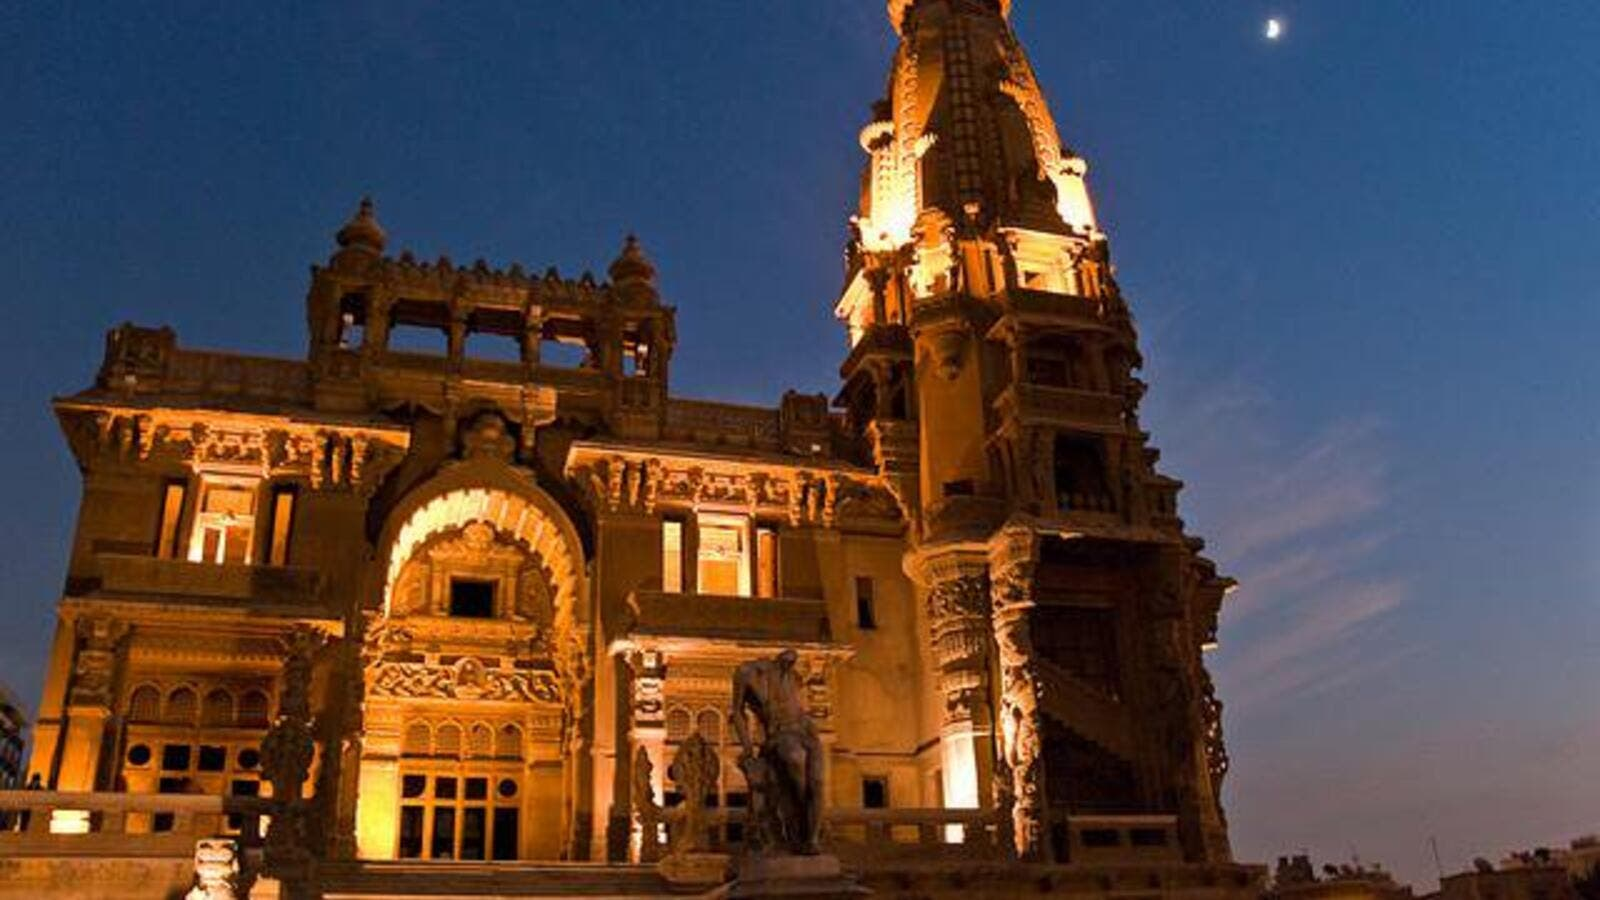 The Baron's Palace(Twitter)